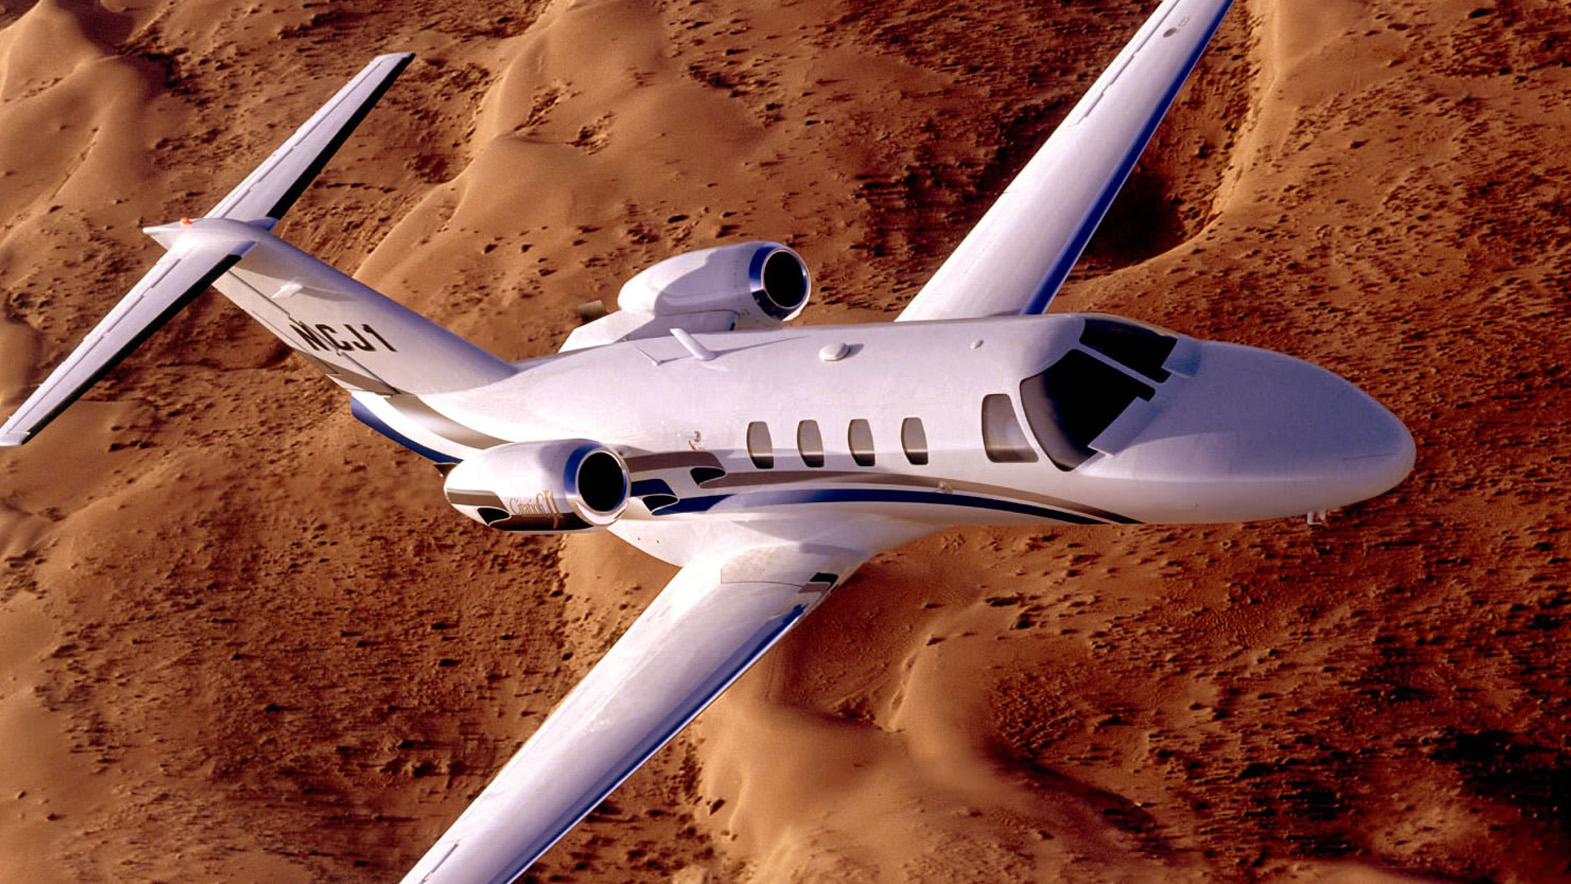 CESSNA CITATION CJ1 AND CJ1 PLUS